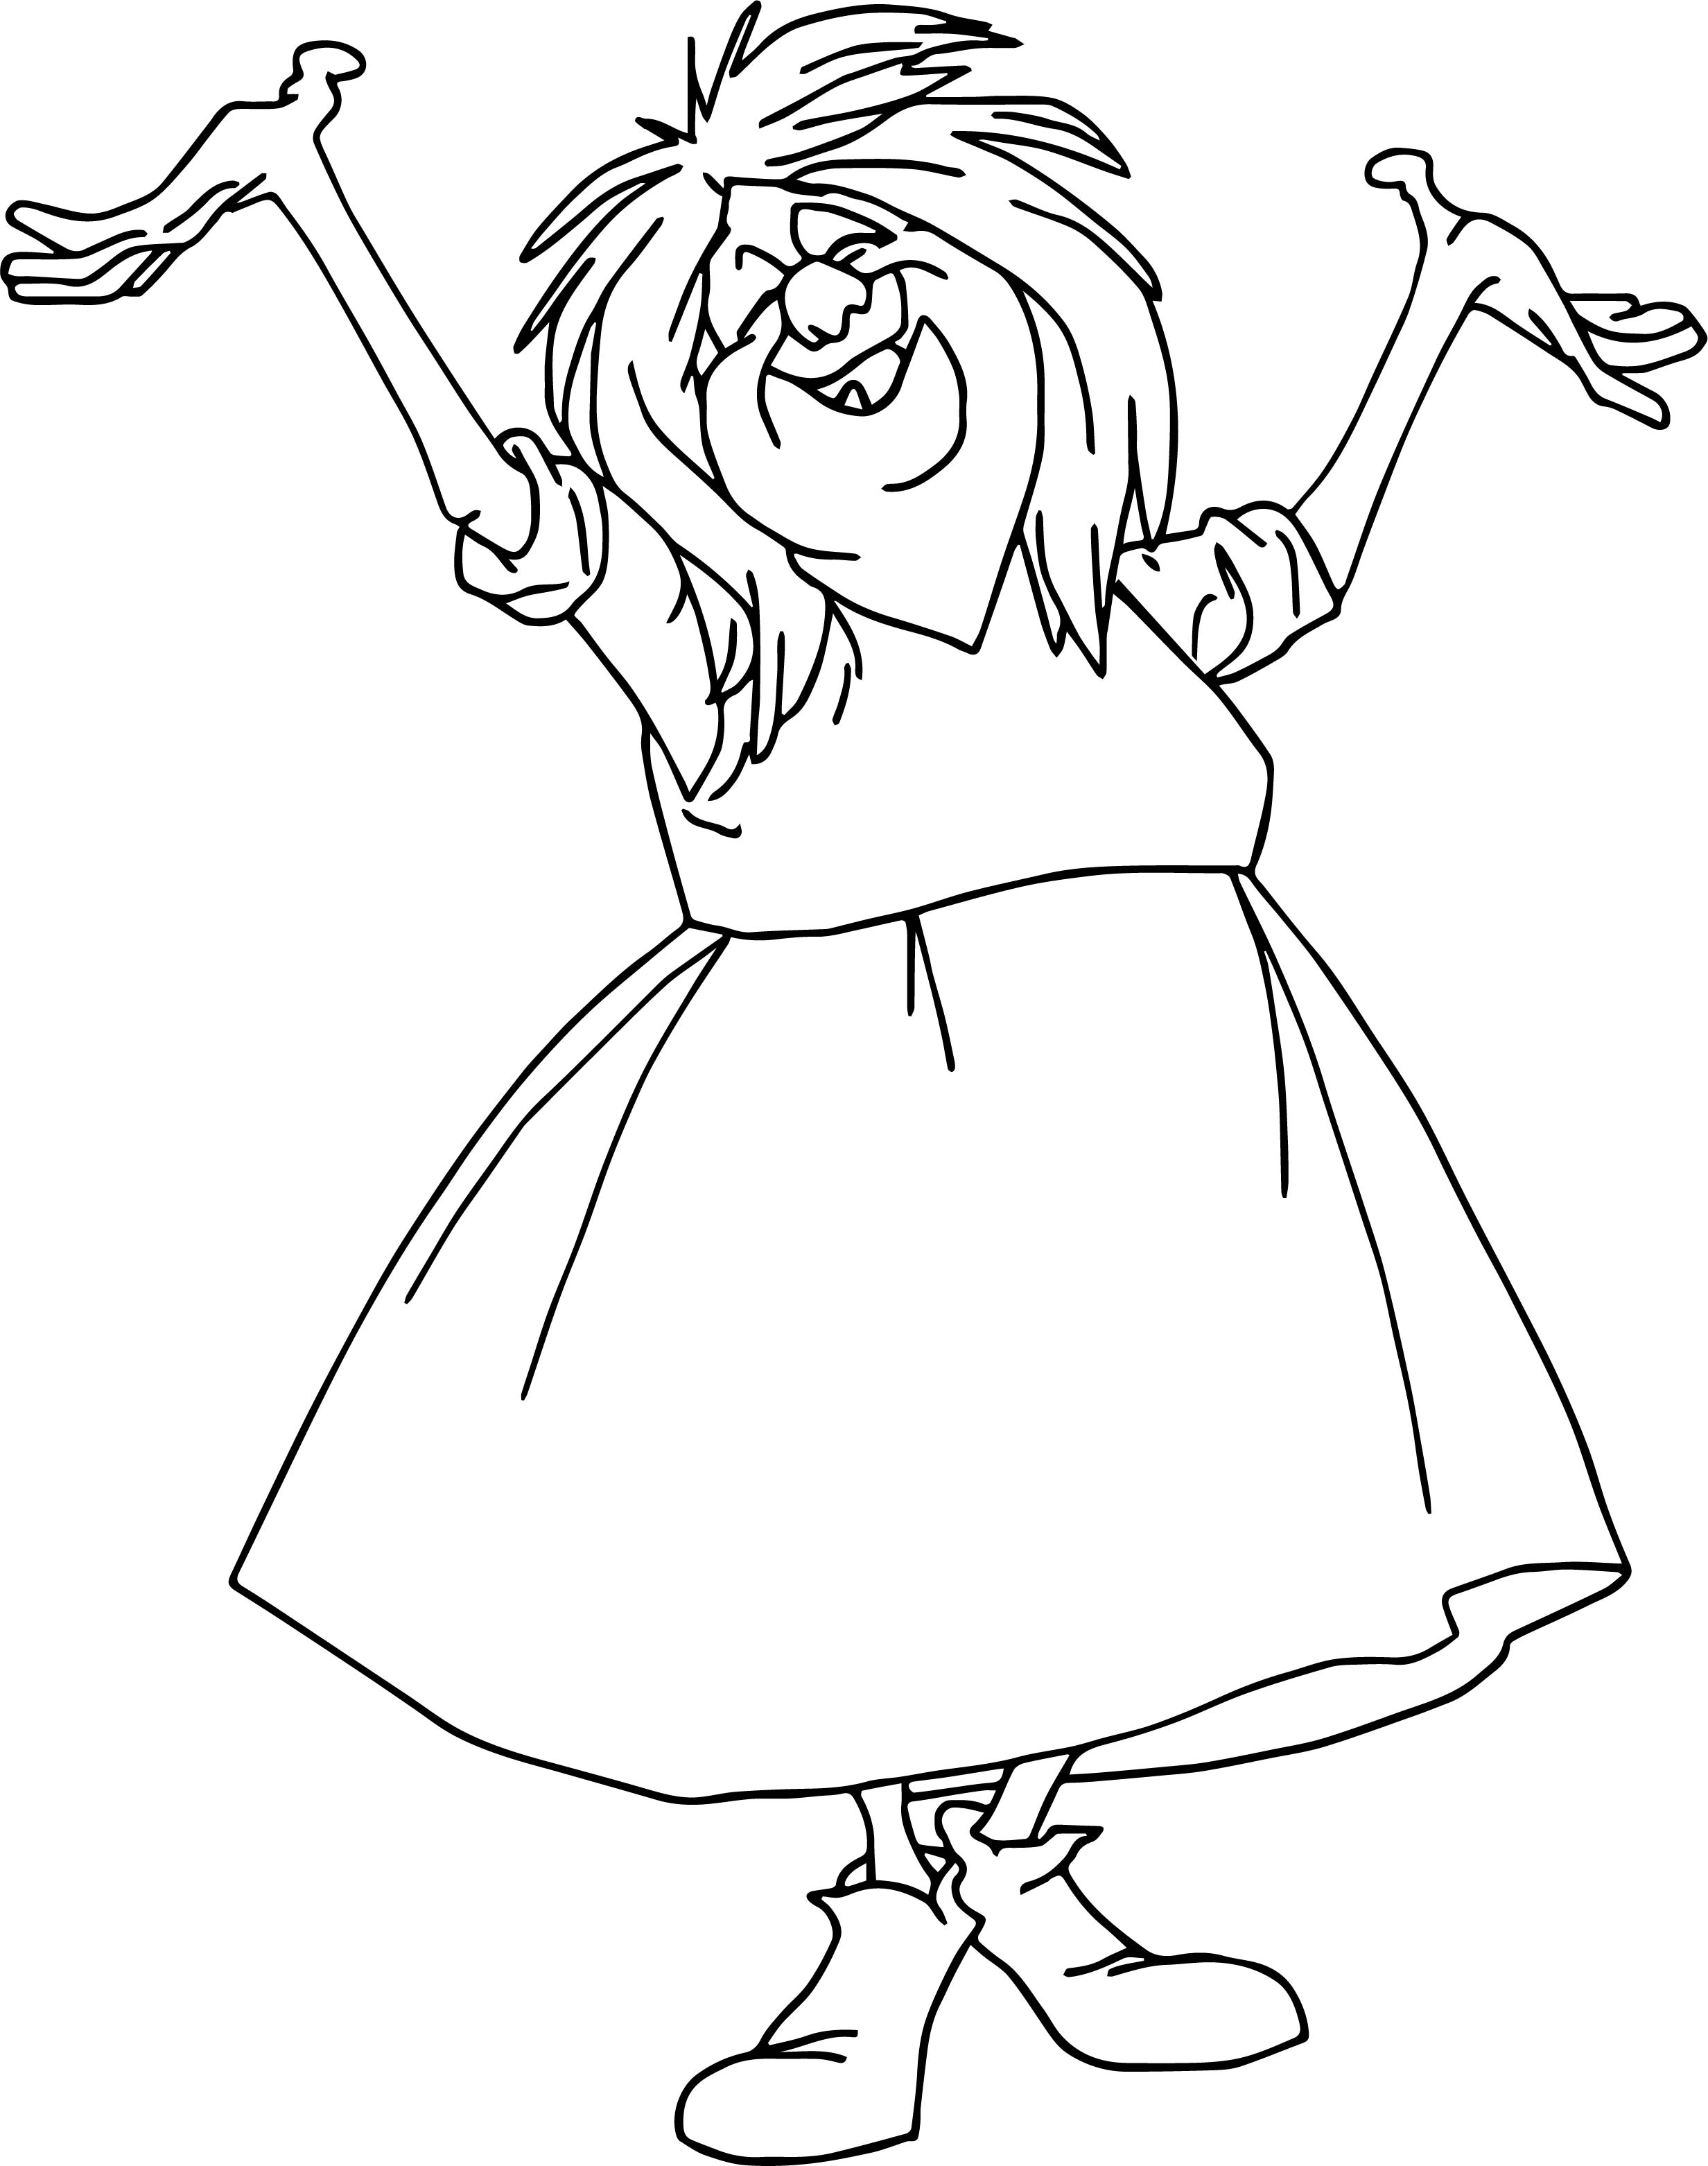 Uncategorized Doodlebops Coloring Pages coloring pages doodlebops photo34